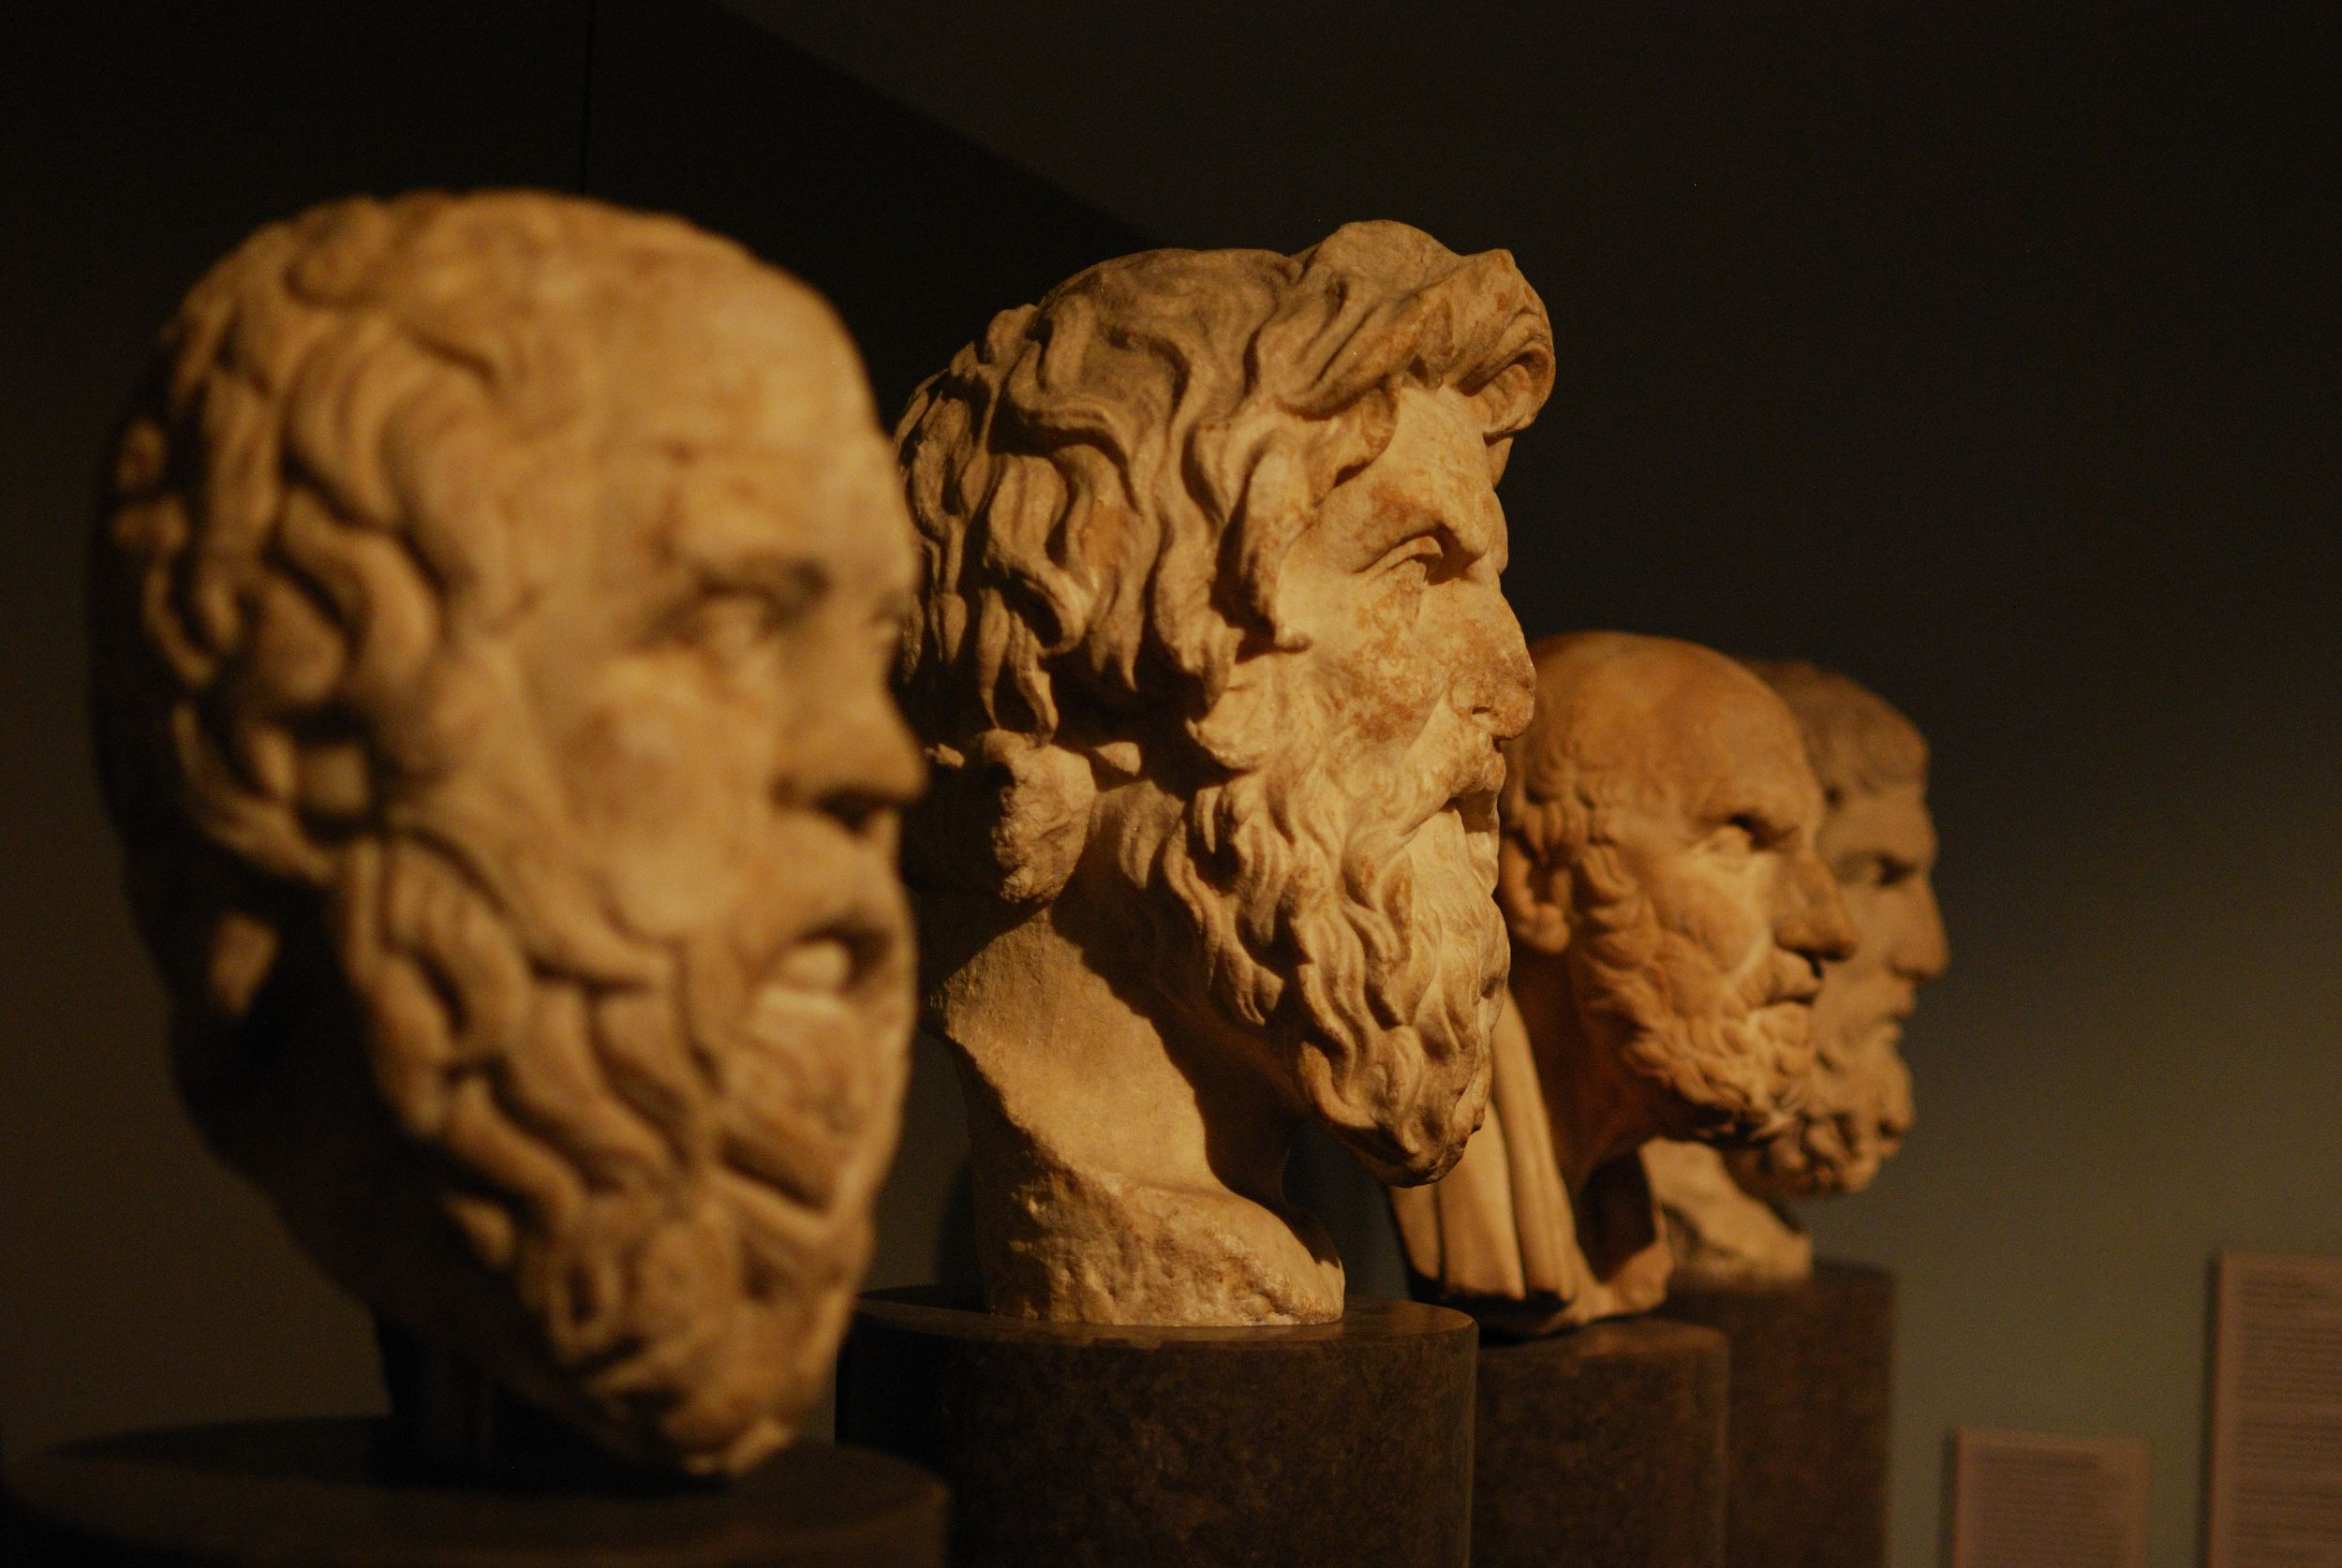 Photograph of statutes of Greek philosophers